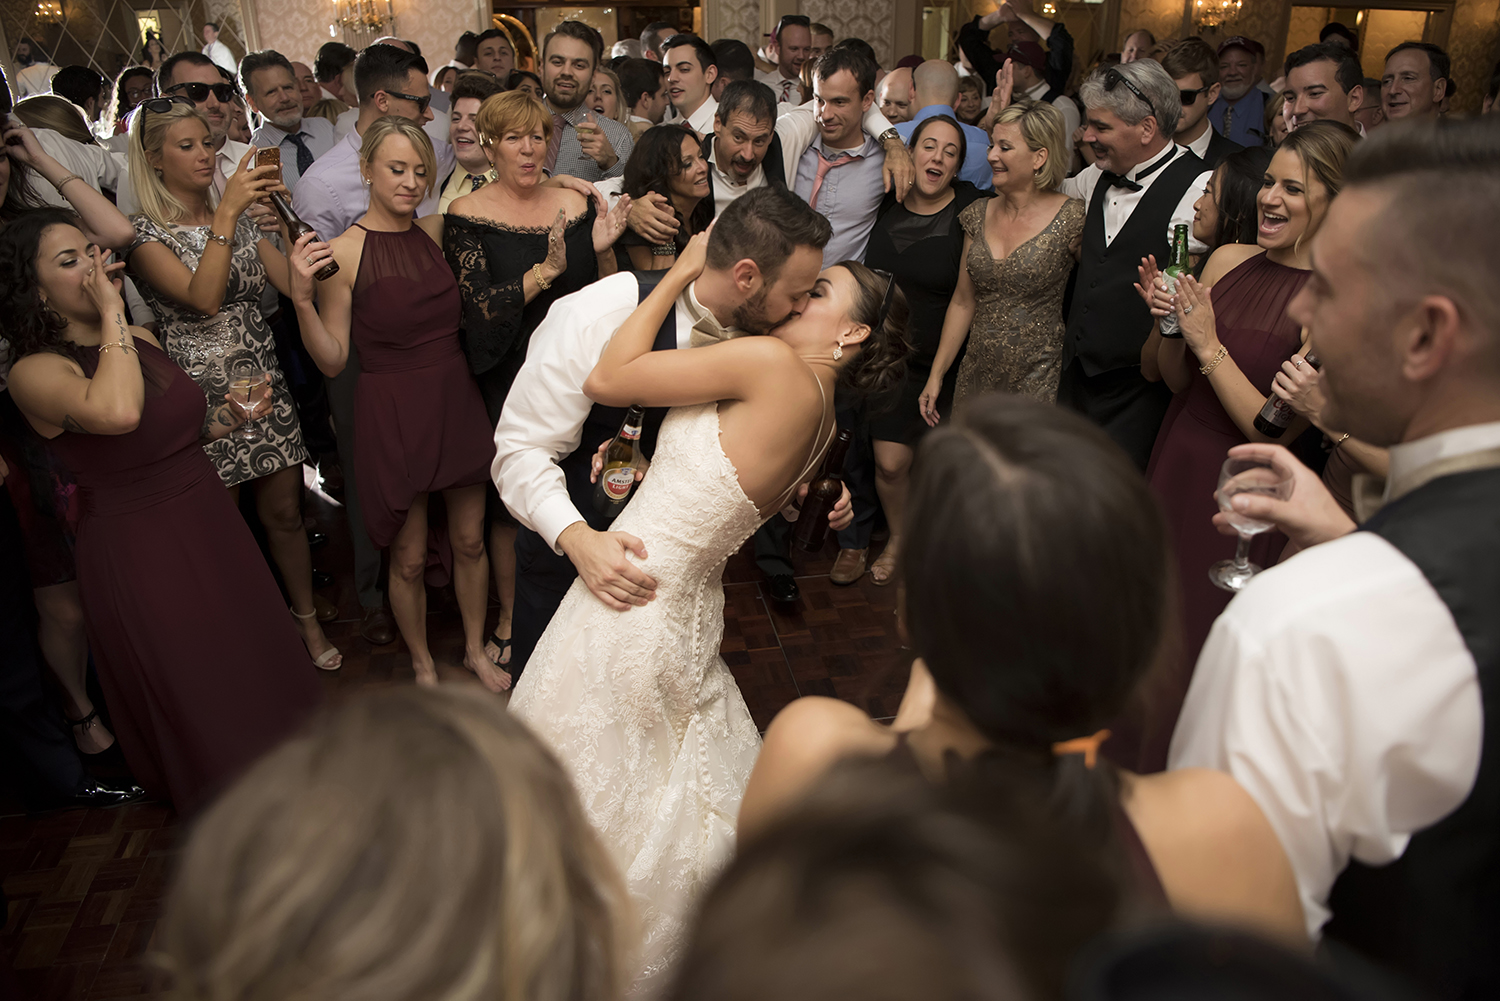 bride and groom kissing on the dance floor surrounded by family and friends at the end of their wedding at The Madison Hotel.